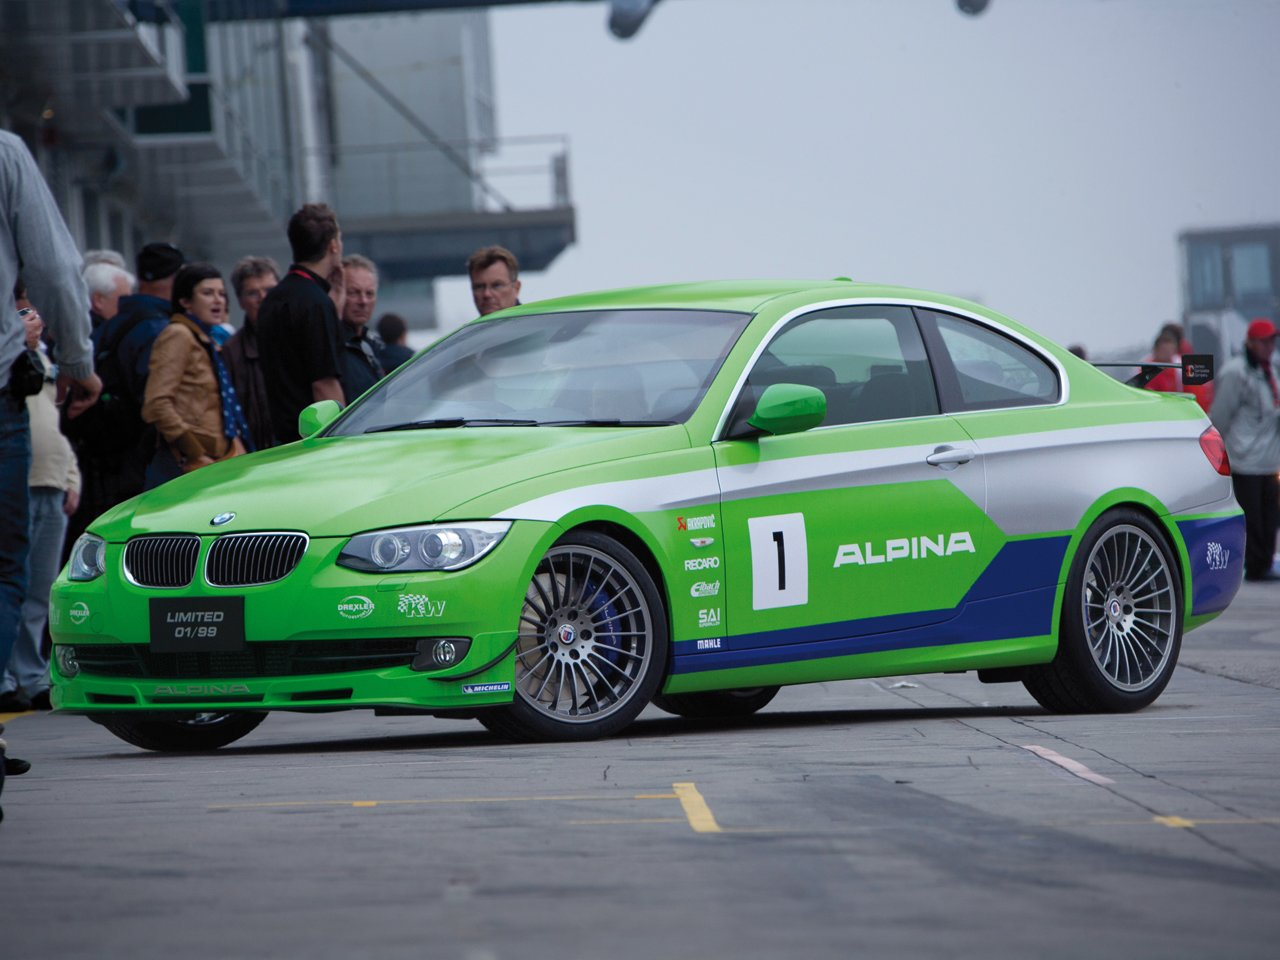 Latest 2012 Alpina Bmw B3 Gt3 Auto Cars Concept Free Download